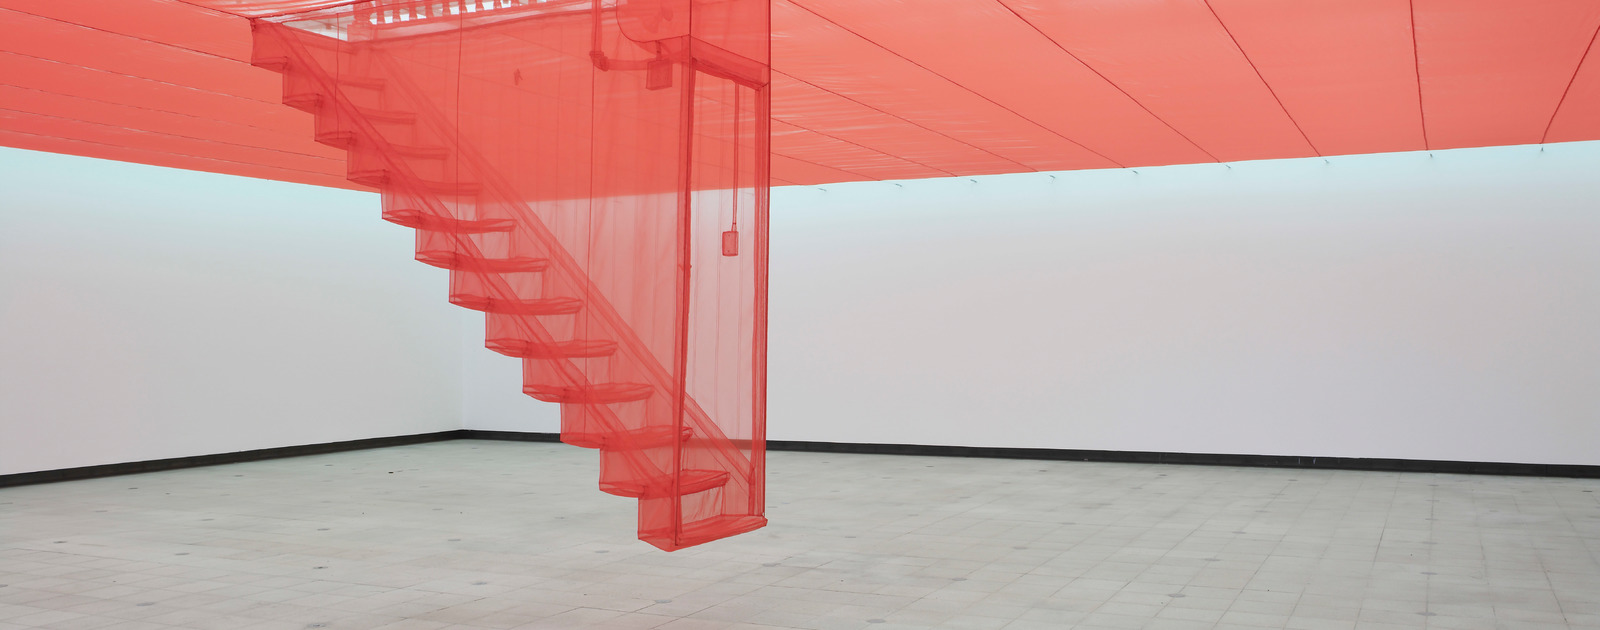 Red Textile Staircase by artist, Do Ho Suh at Hayward Gallery